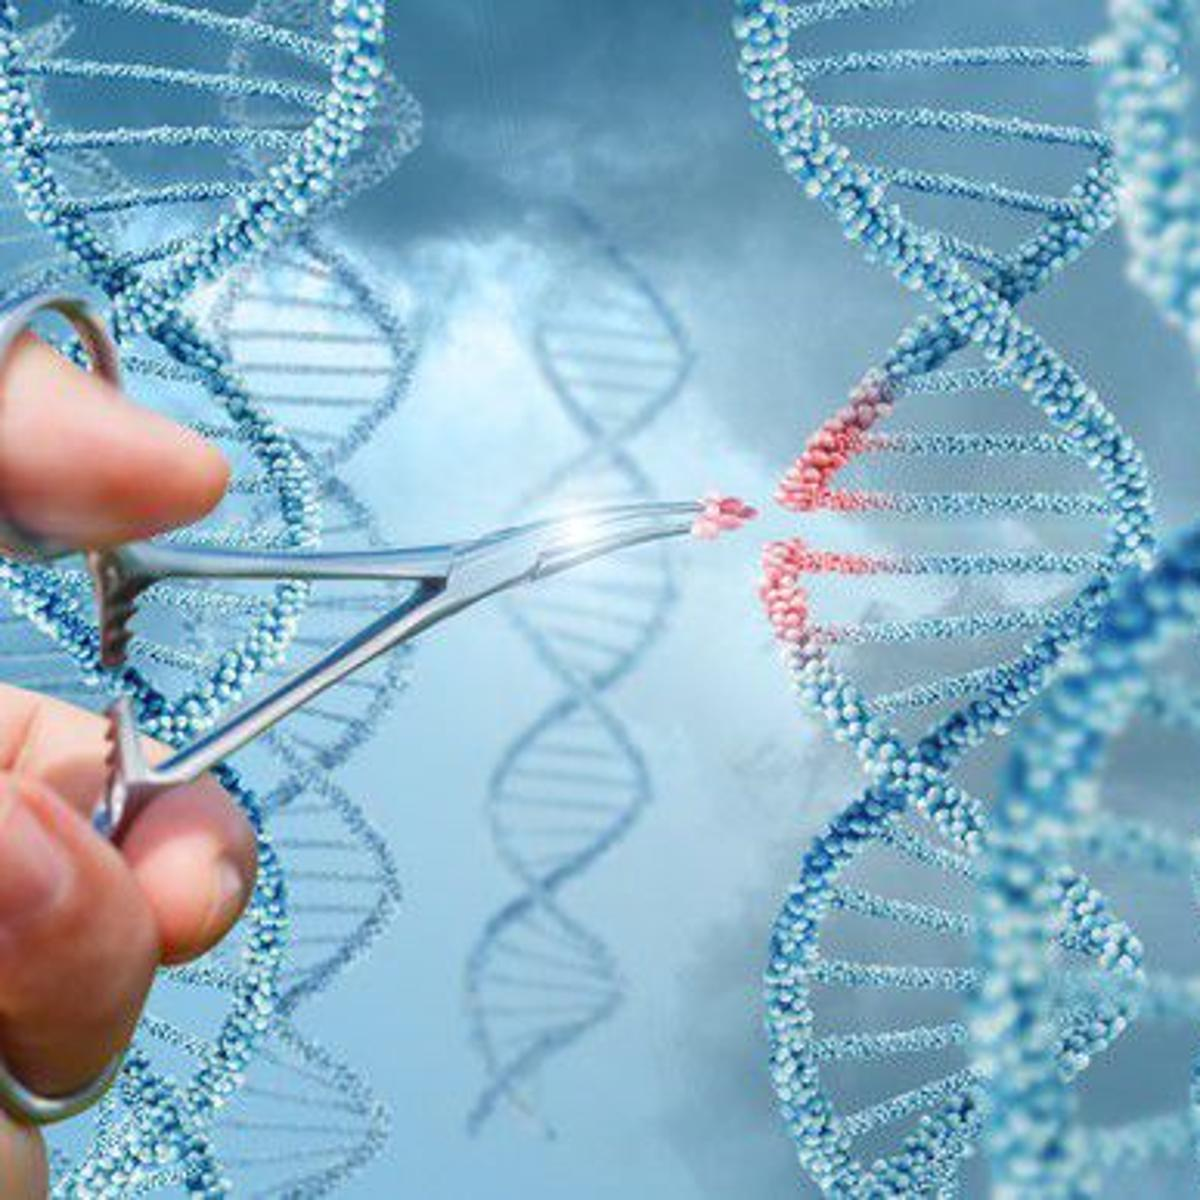 3 Top Biotech Stocks to Buy in March   Markets & Stocks